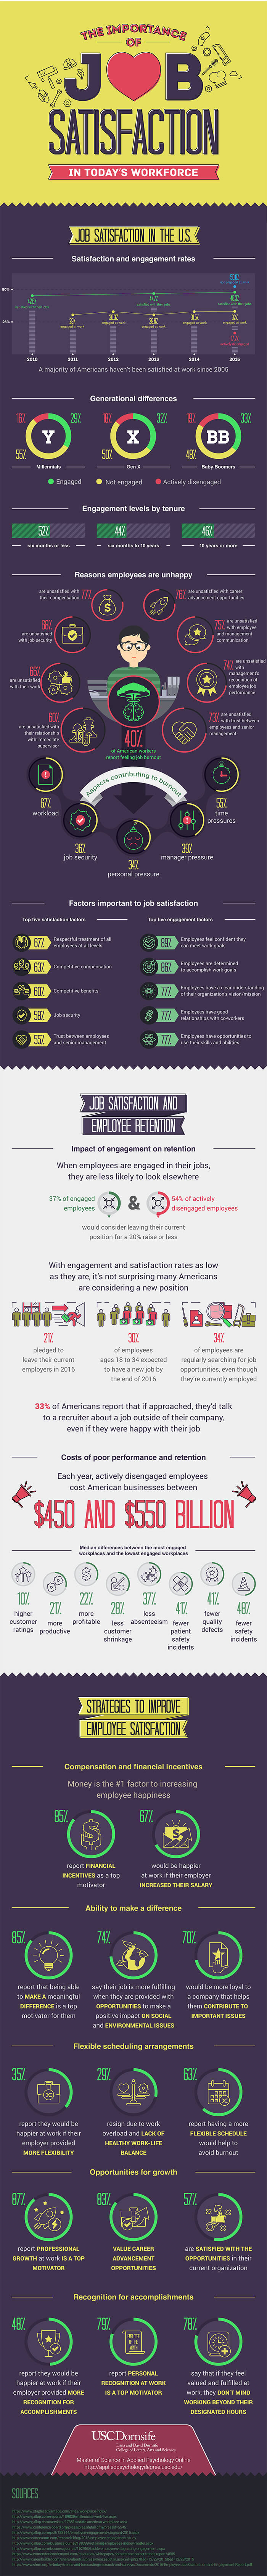 Why Self Employment Could Be The Answer? [Infographic] 1